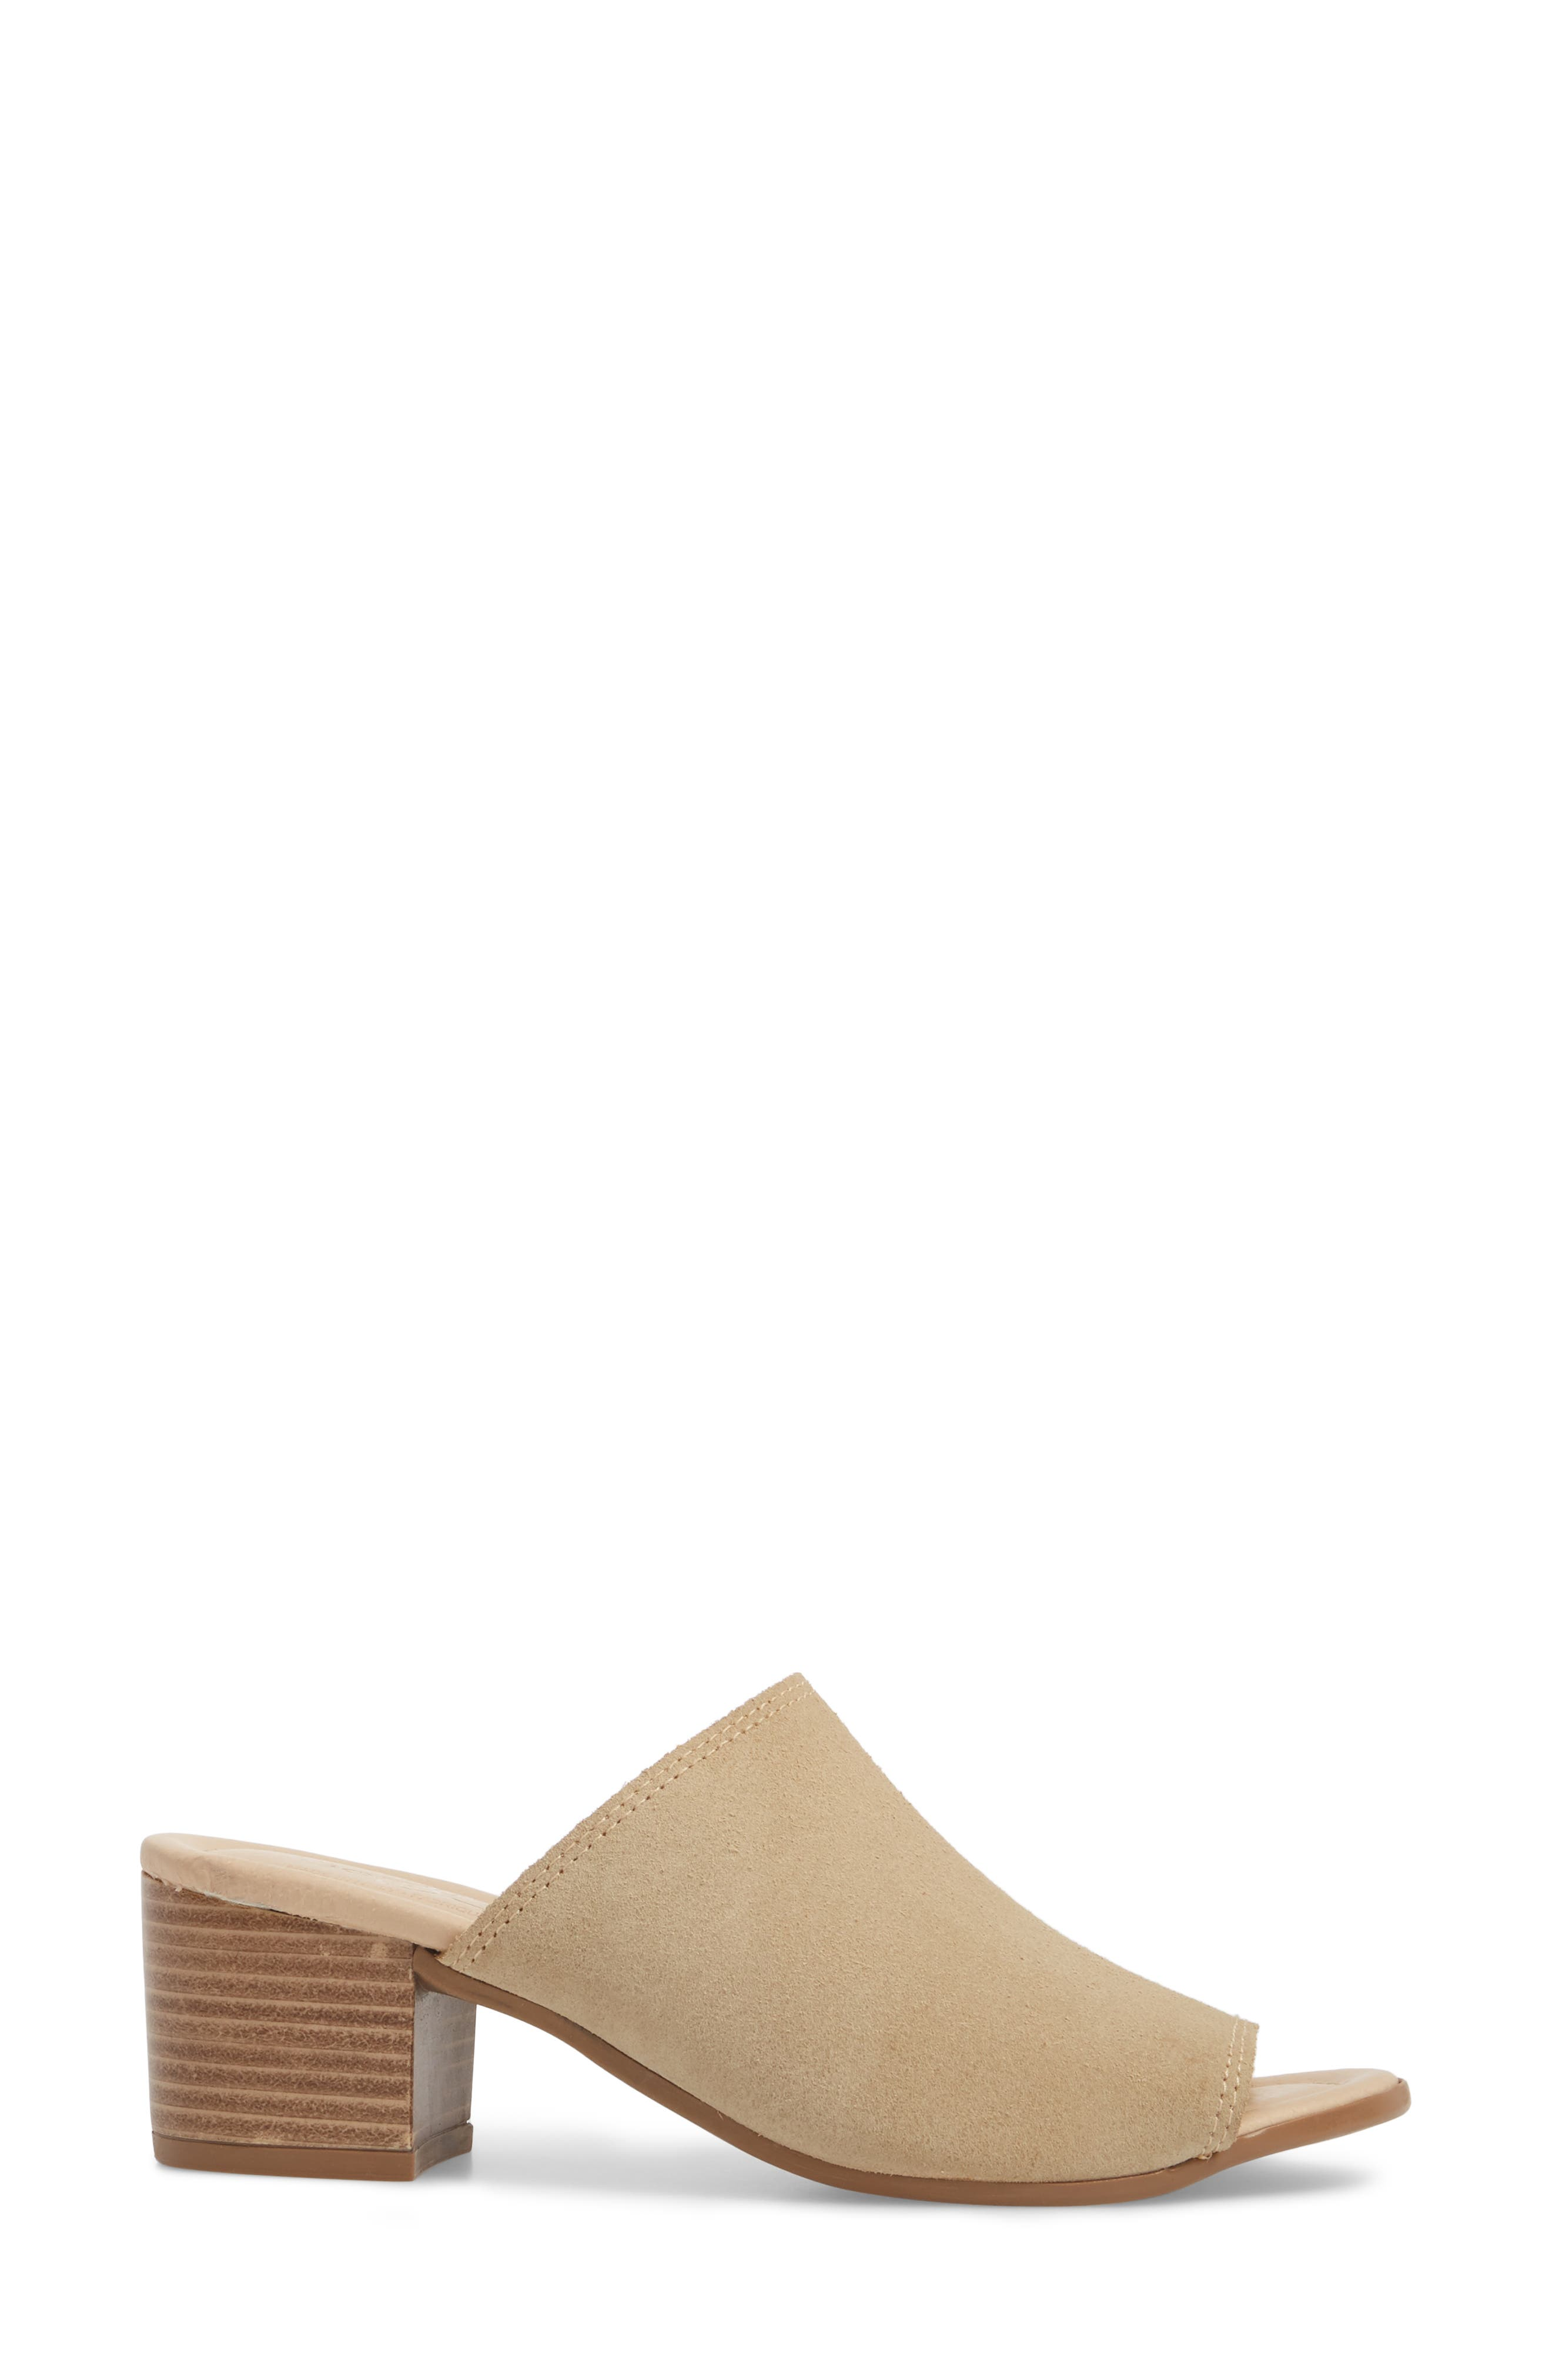 BOS. & CO., Fawn Mule, Alternate thumbnail 3, color, SAND CROSTA LEATHER